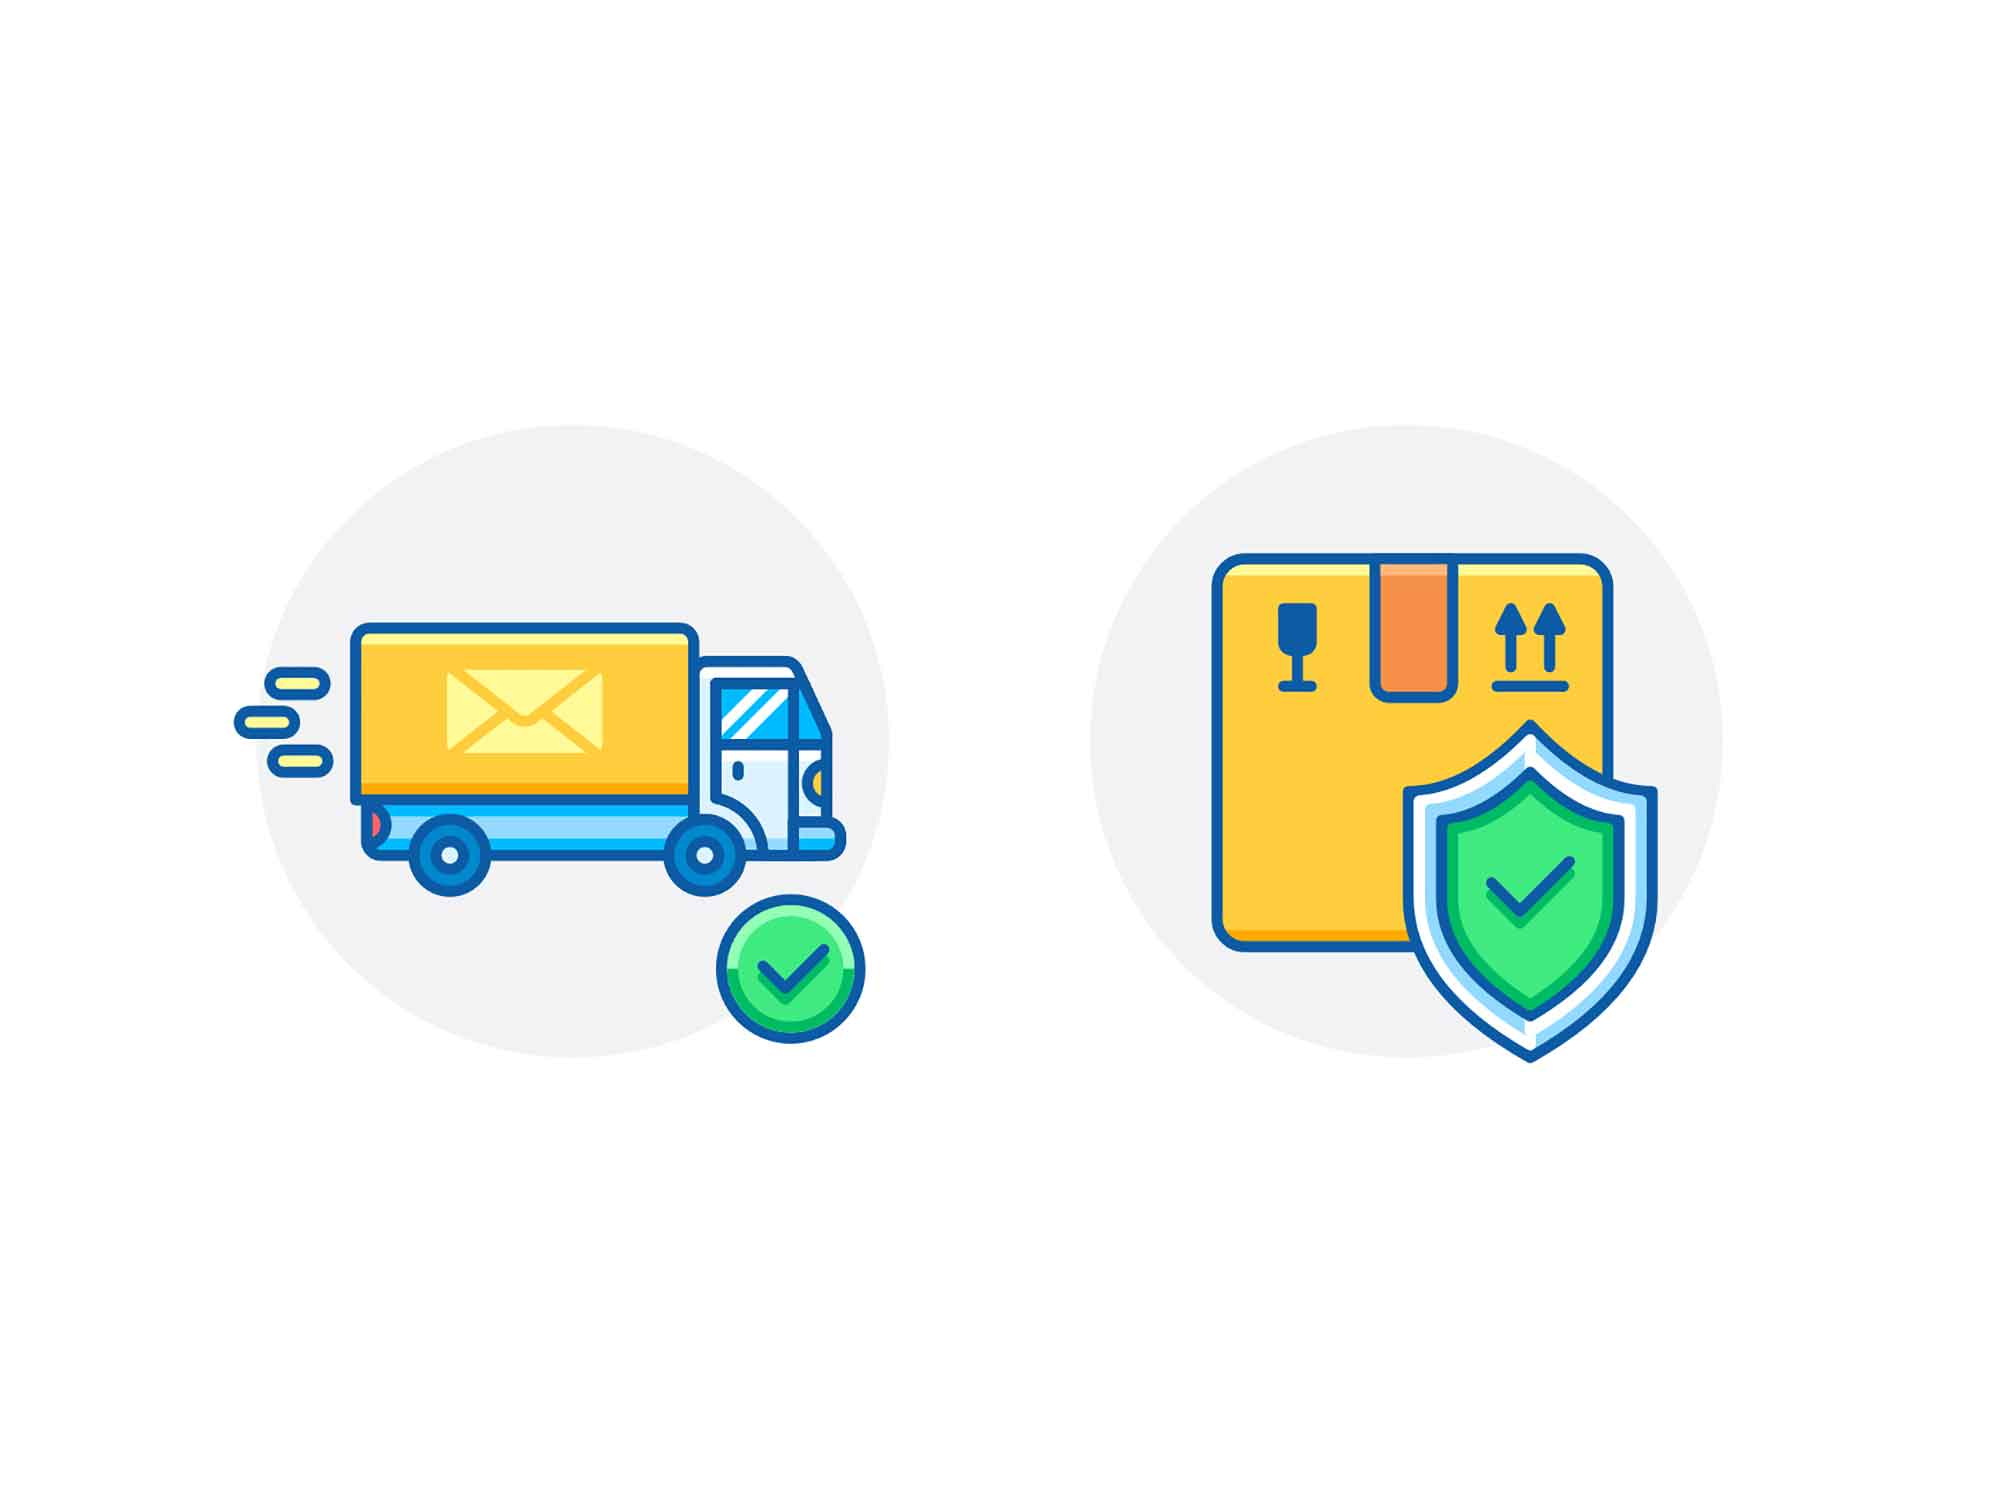 Package Insurance Icons